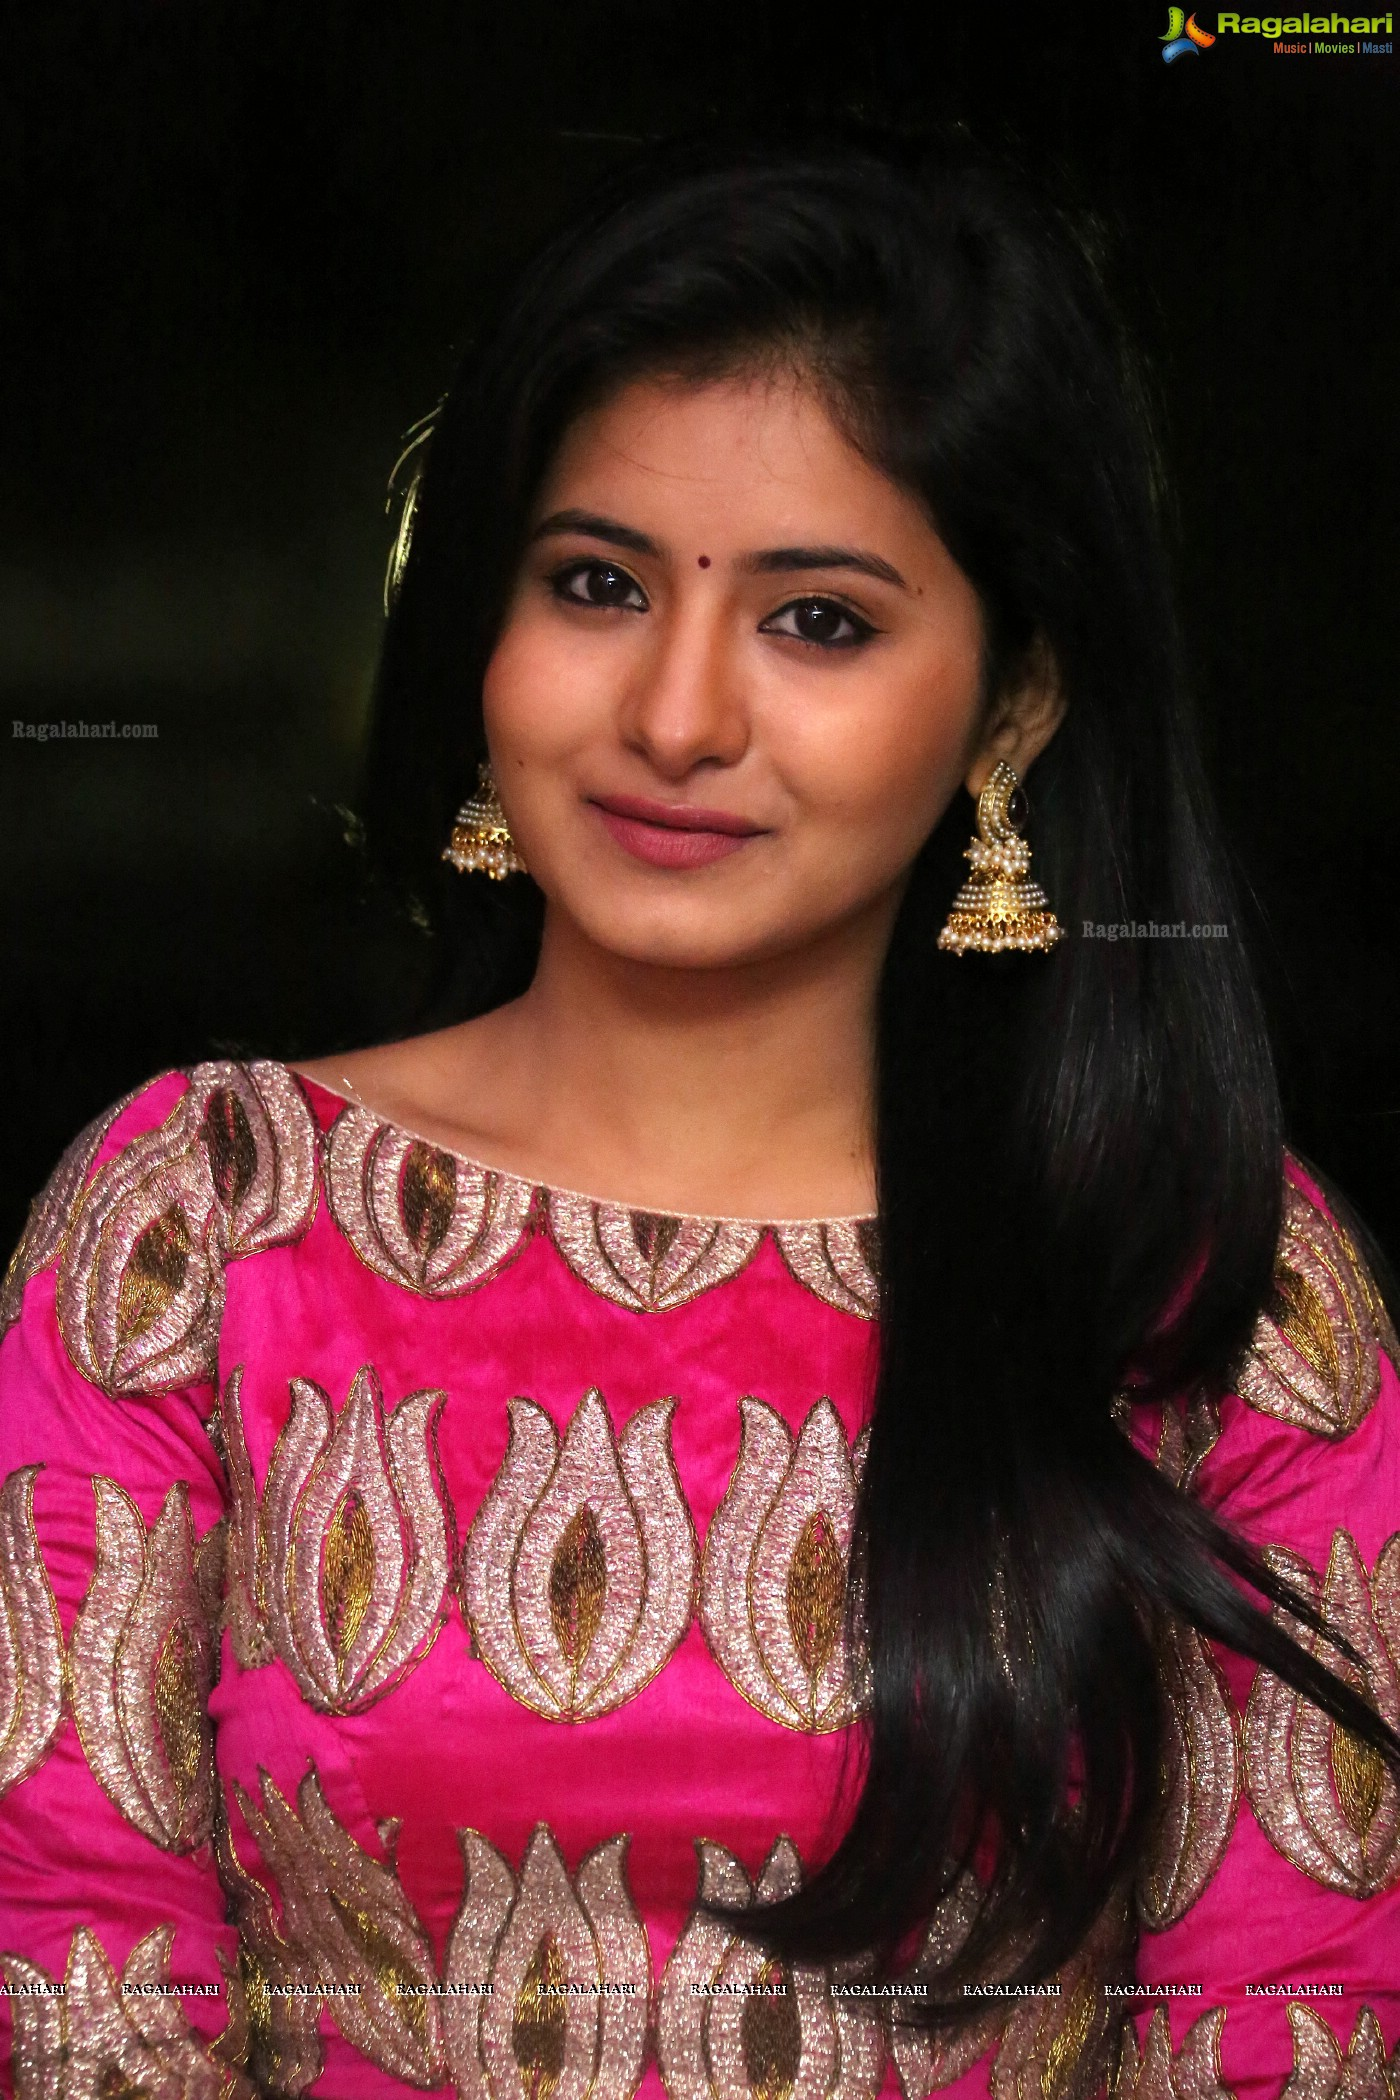 Reshmi Menon Posters Image 26 Beautiful Tollywood Actress Images